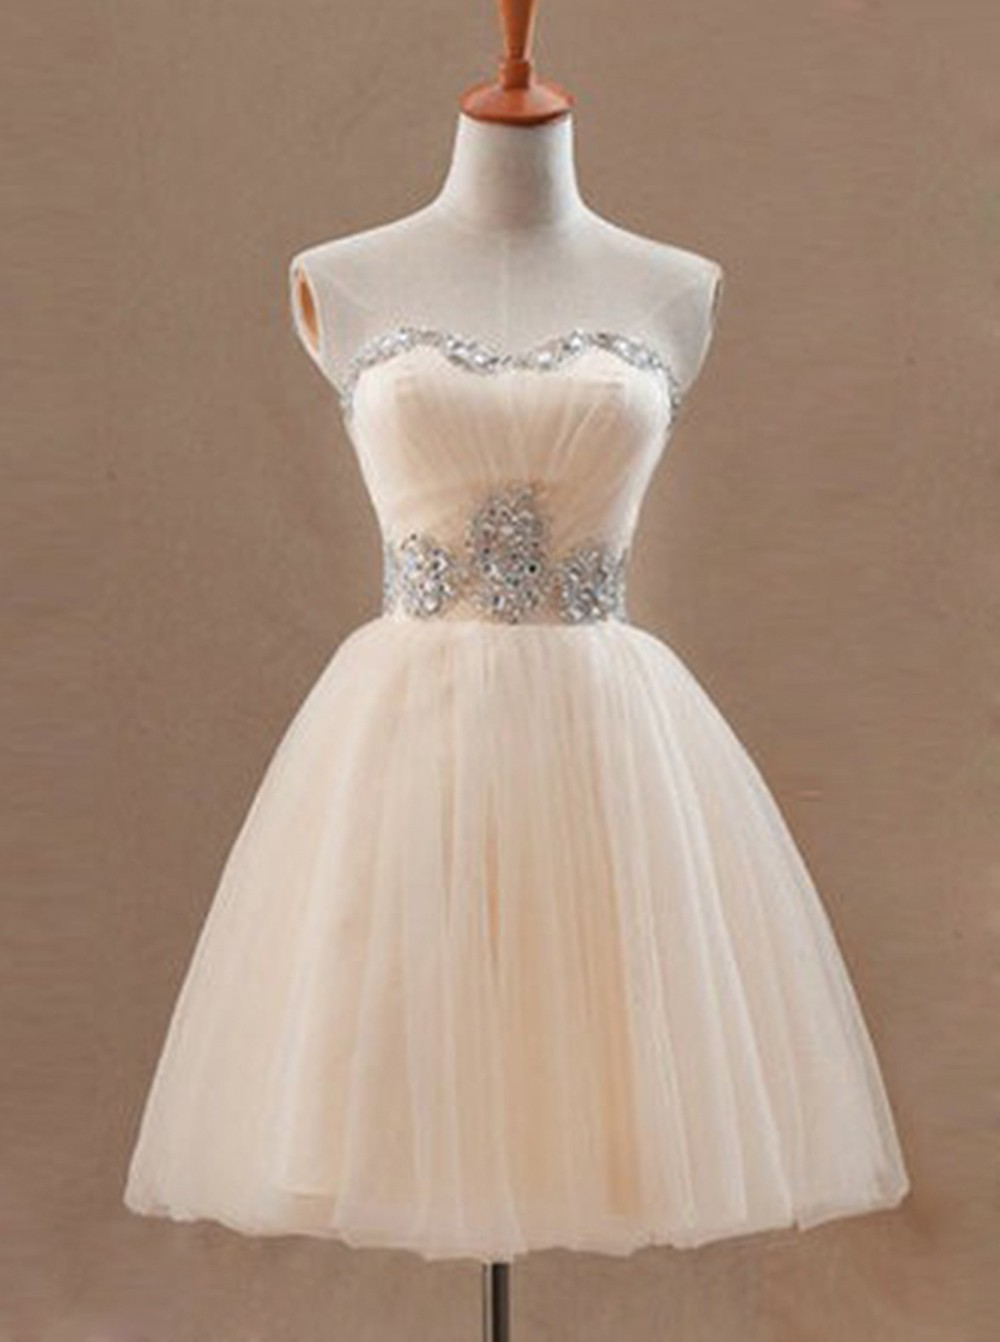 Exquisite Sweetheart Sleeveless Short Pearl Pink Homecoming Dress with Beading Waist